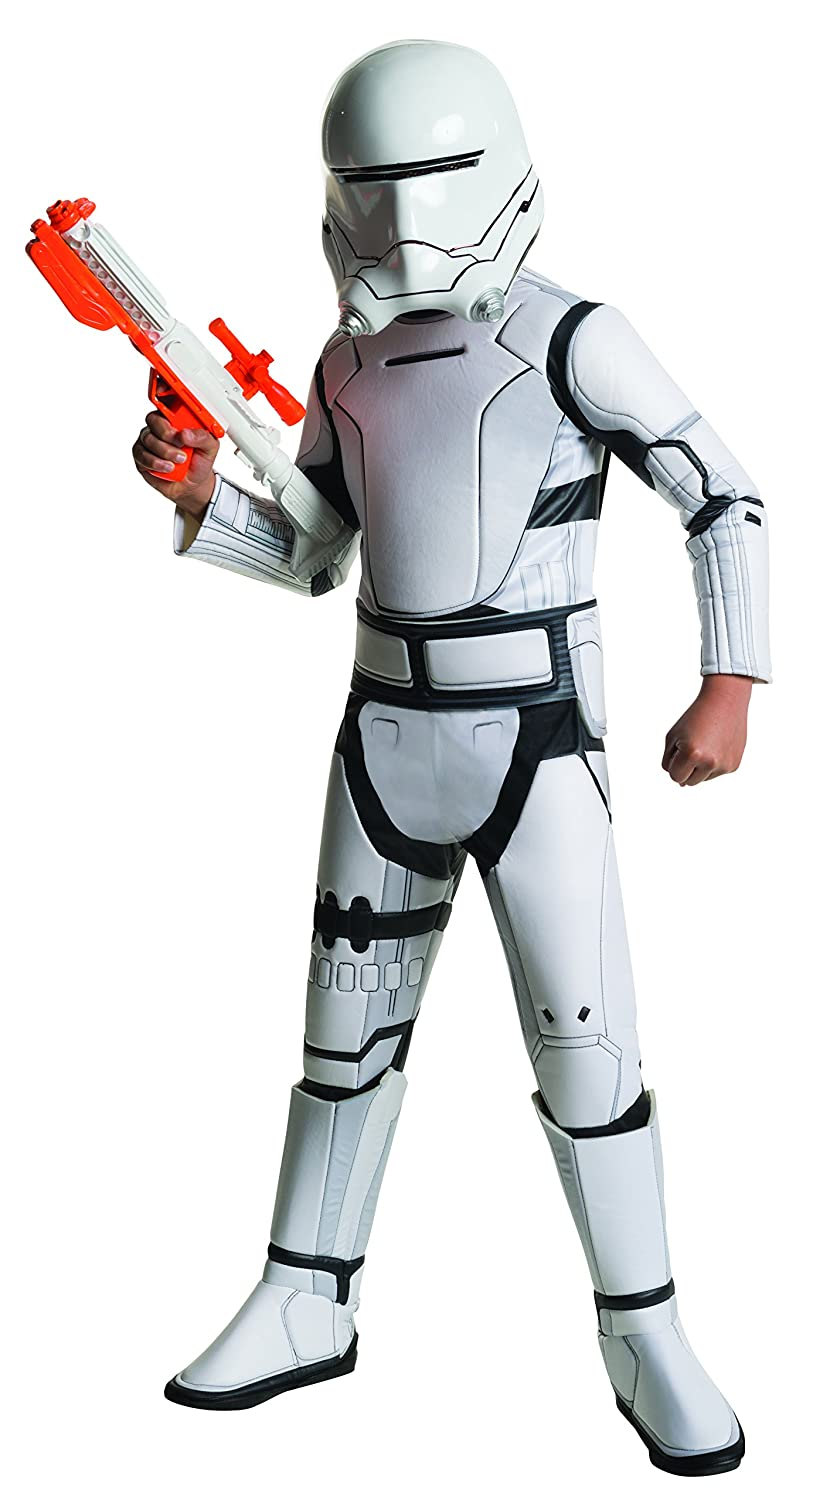 Star Wars: The Force Awakens Childs Super Deluxe Flametrooper Costume, Small